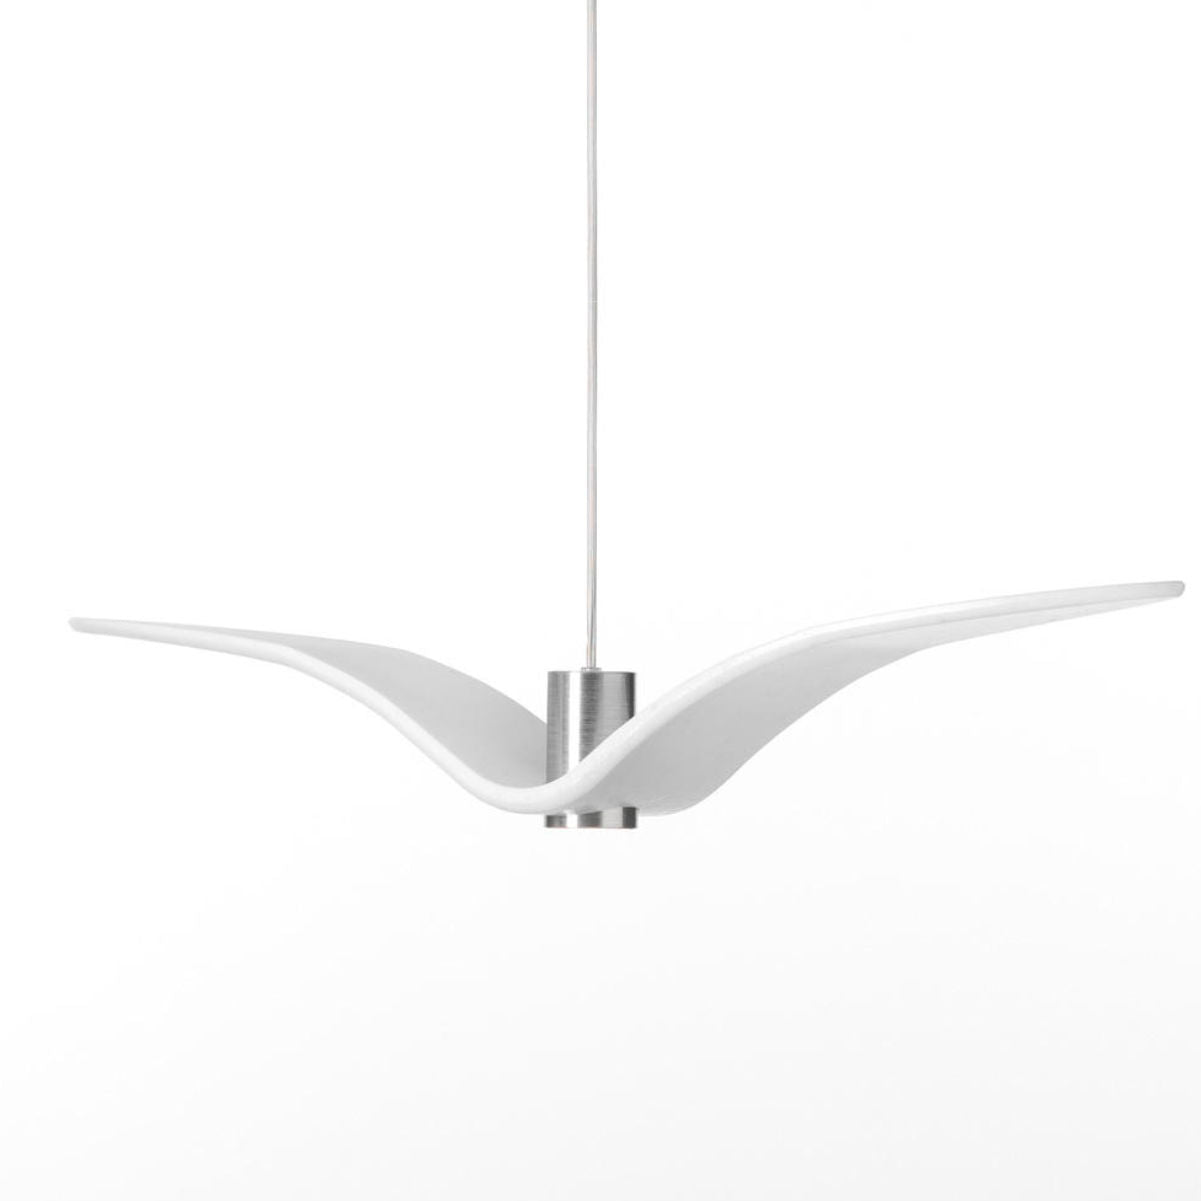 Brokis Night Birds pendent lamp